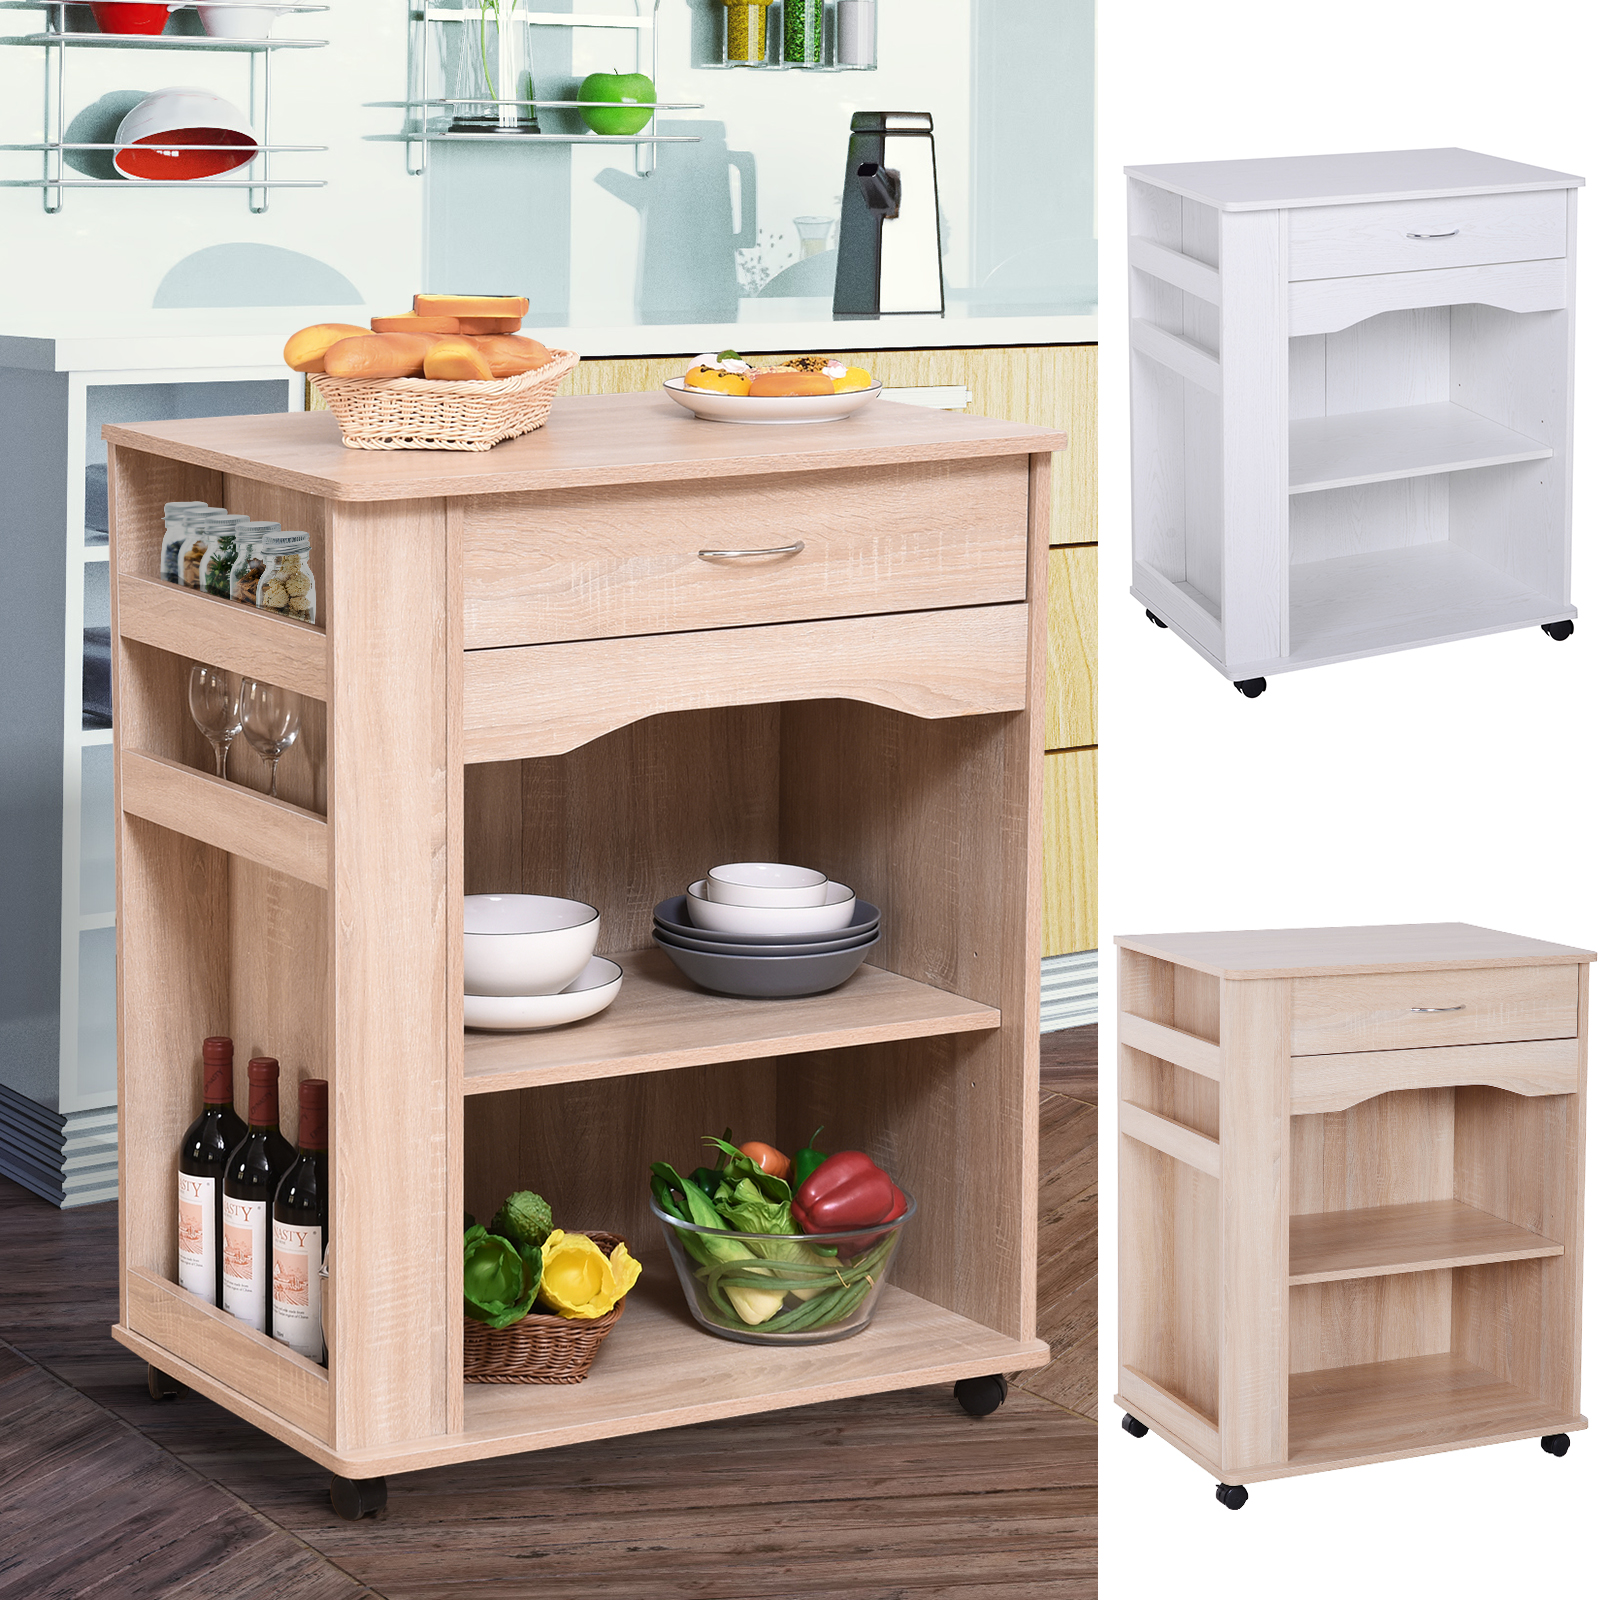 Details About 3 Tier Kitchen Serving Trolley Microwave Oven Utility Cart On Wheels W Drawer